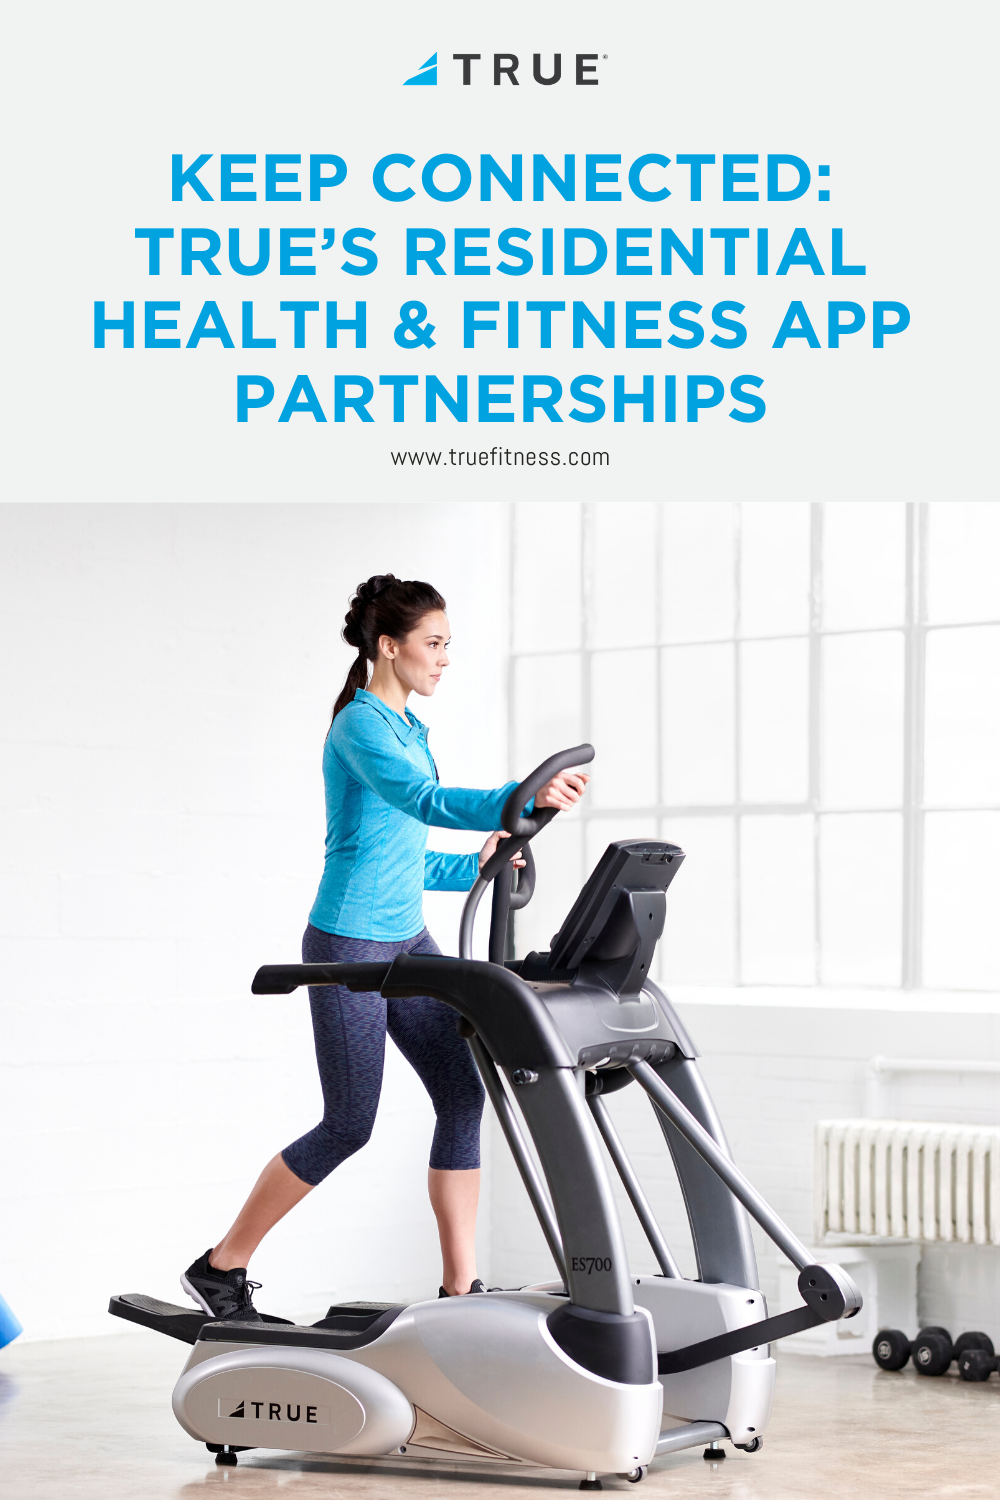 Keep Connected: TRUE's Residential Health & Fitness App Partnerships -  We live in an ever-changing,...